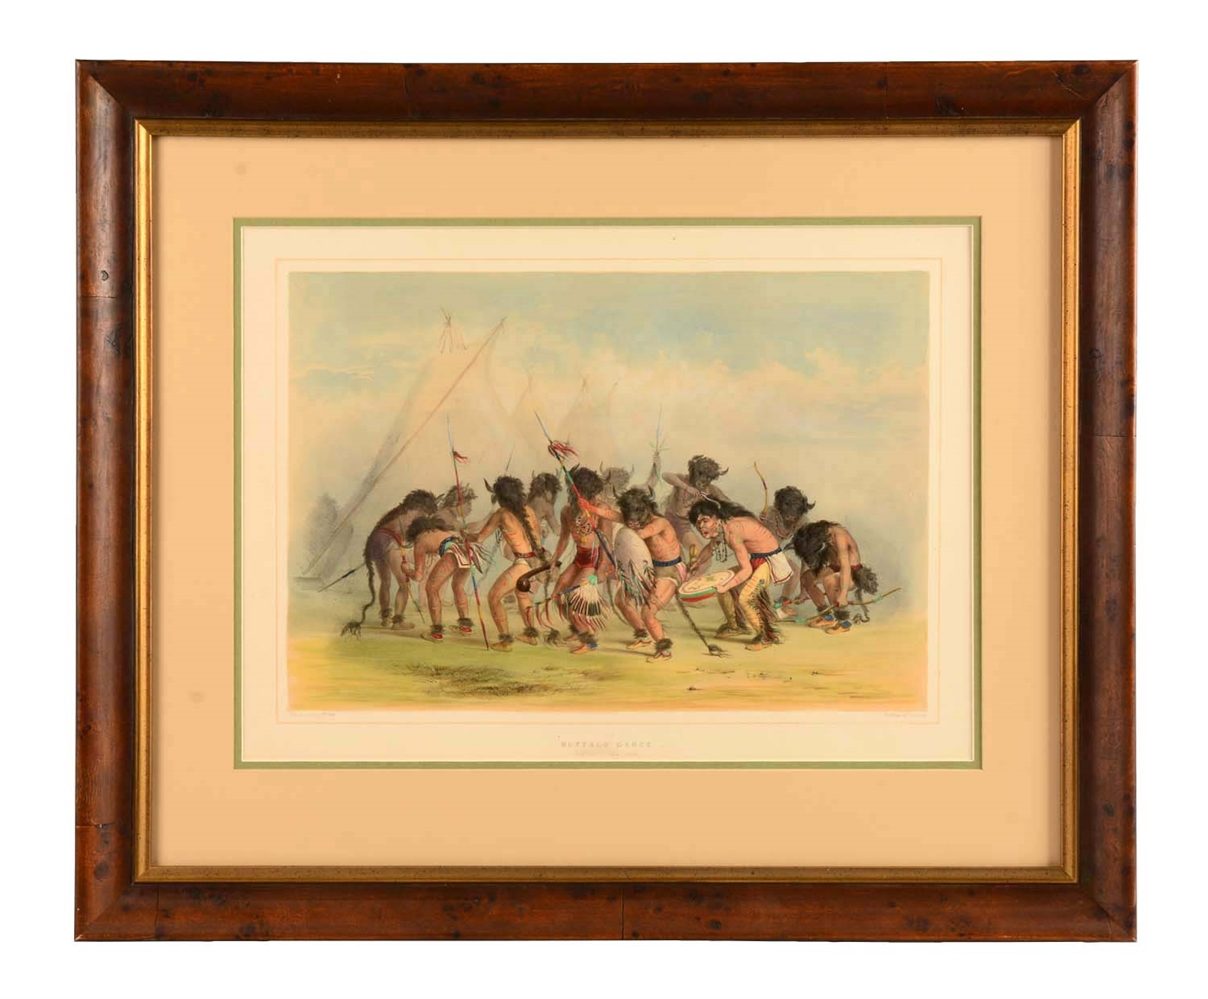 Buffalo Dance, No. 8 (from Catlins N. A. Indian Collection) Framed Lithograph.